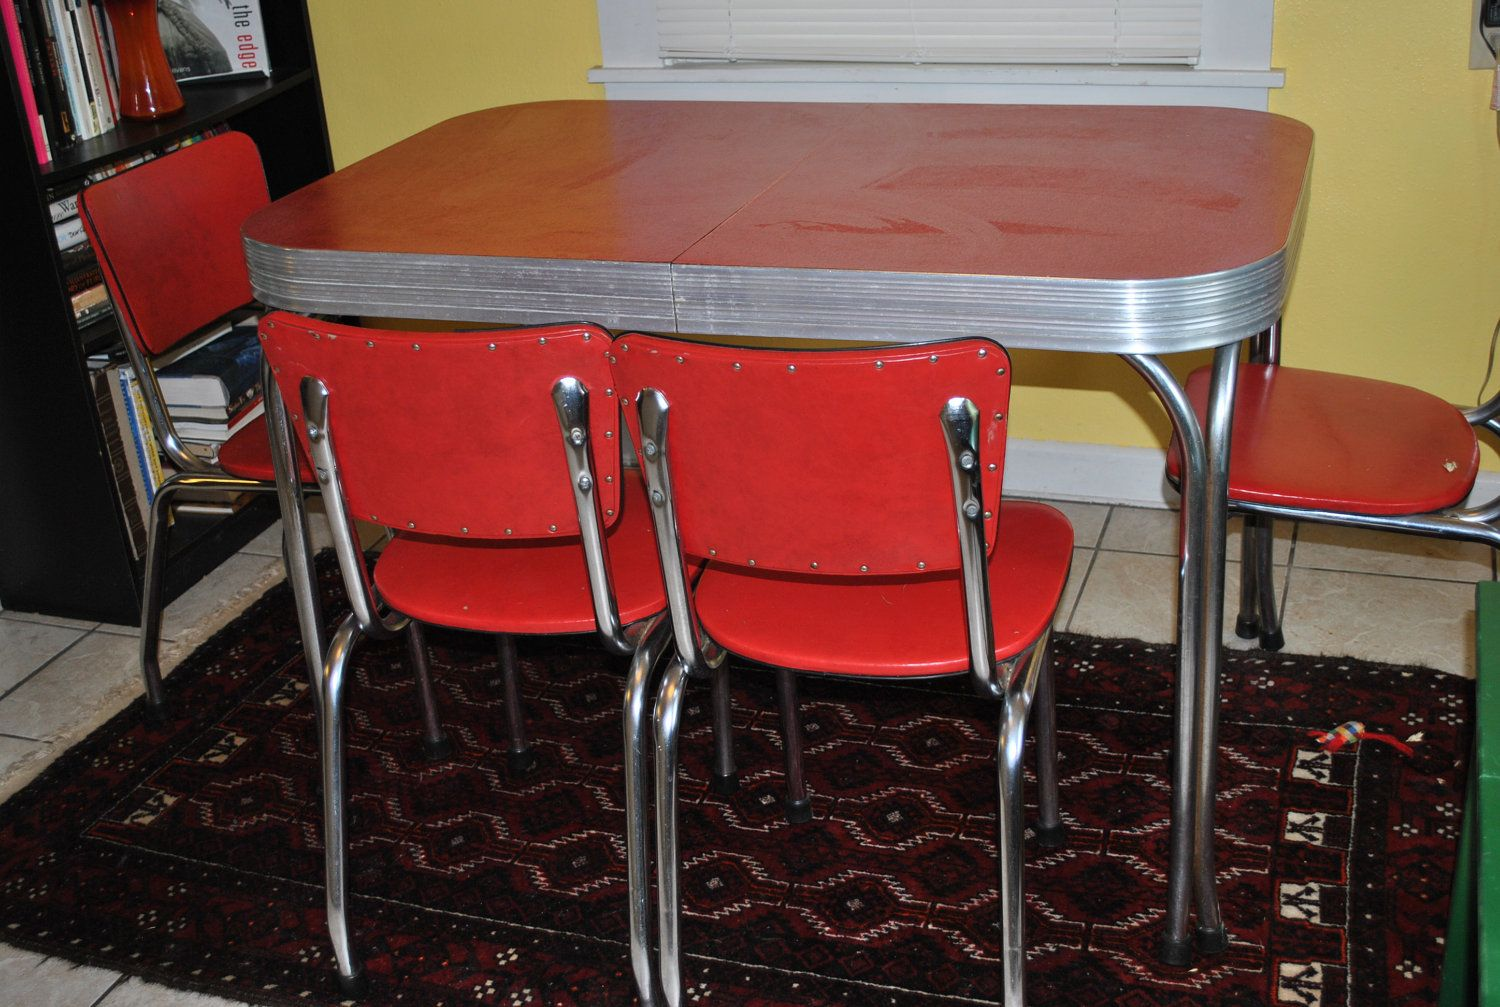 1950s formica kitchen table and chairs white round vintage red chrome dinette set with 4